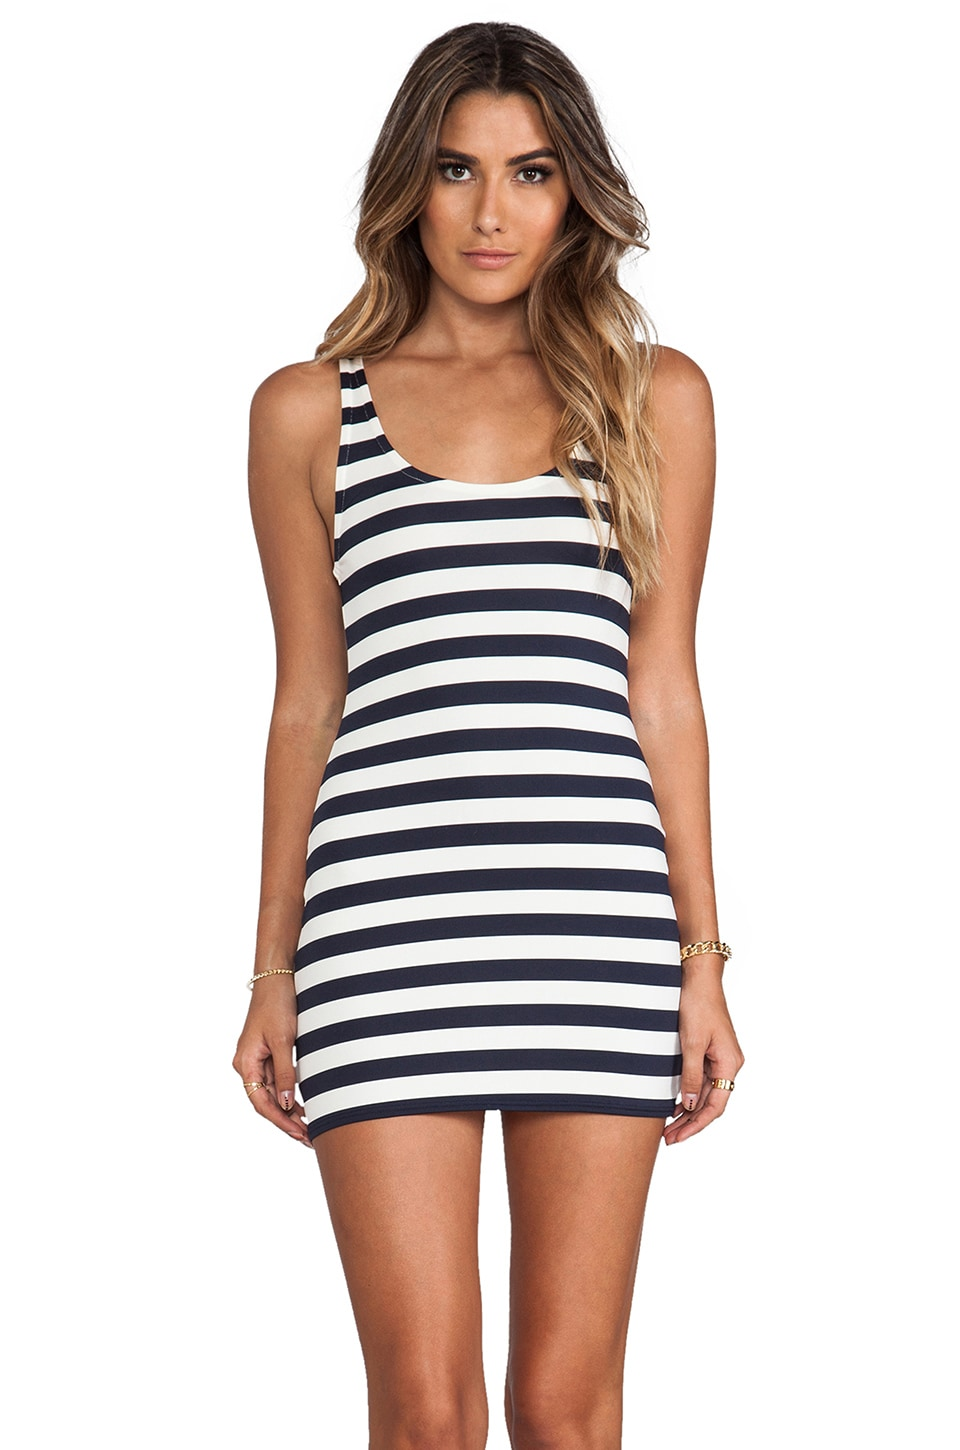 Juicy Couture Boho Stripe Cover Up Dress in Regal